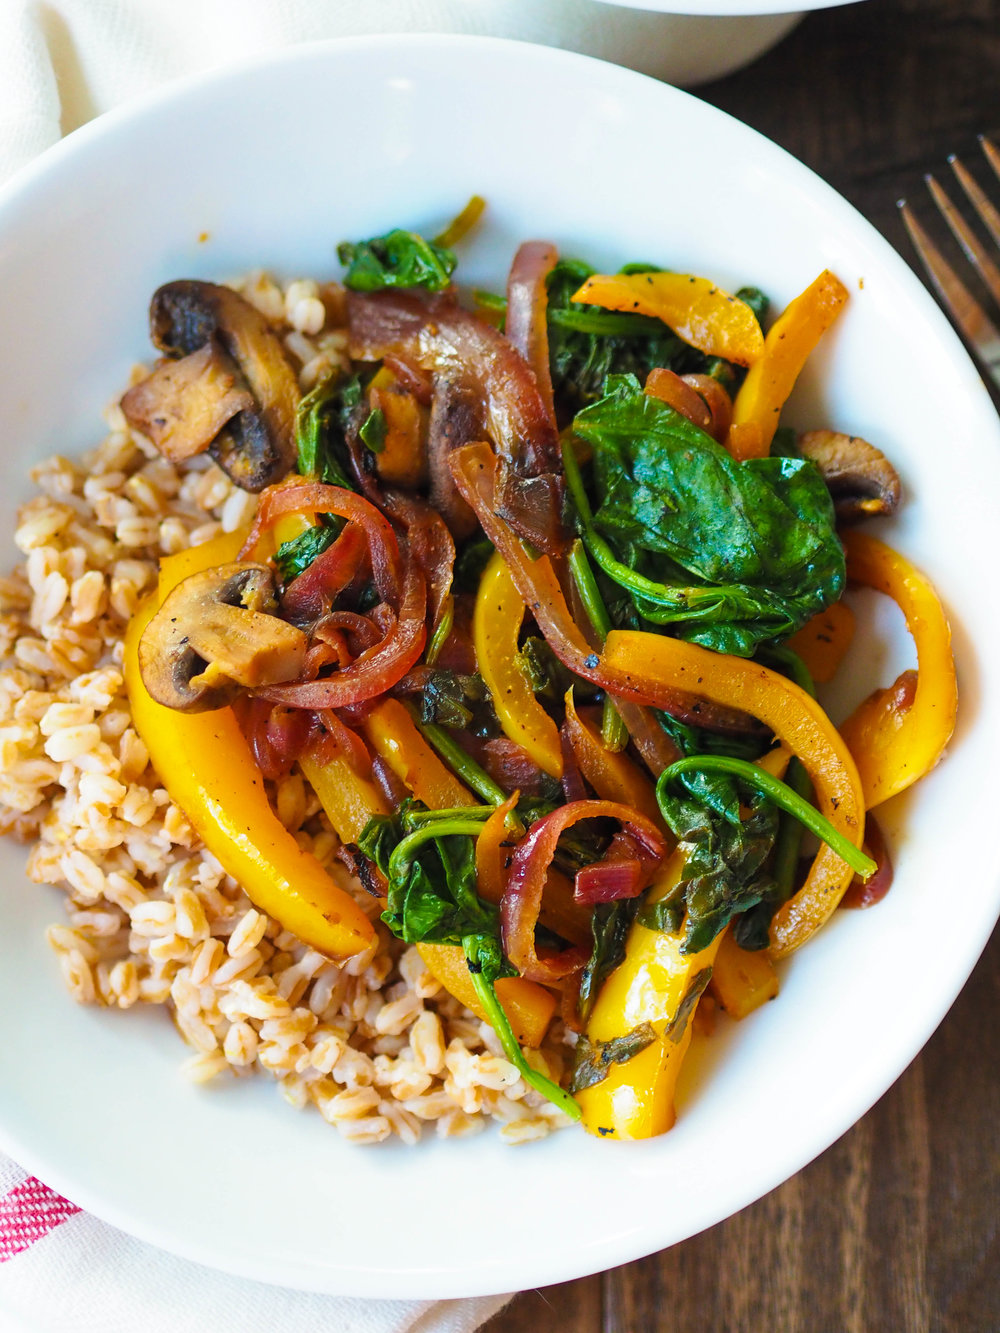 Black Pepper and Lemon Sauteed Vegetables with Farro! Saute peppers, mushrooms and red onions with lemon juice and tons of black pepper, and serve over whole grain farro for a yummy vegan meal!